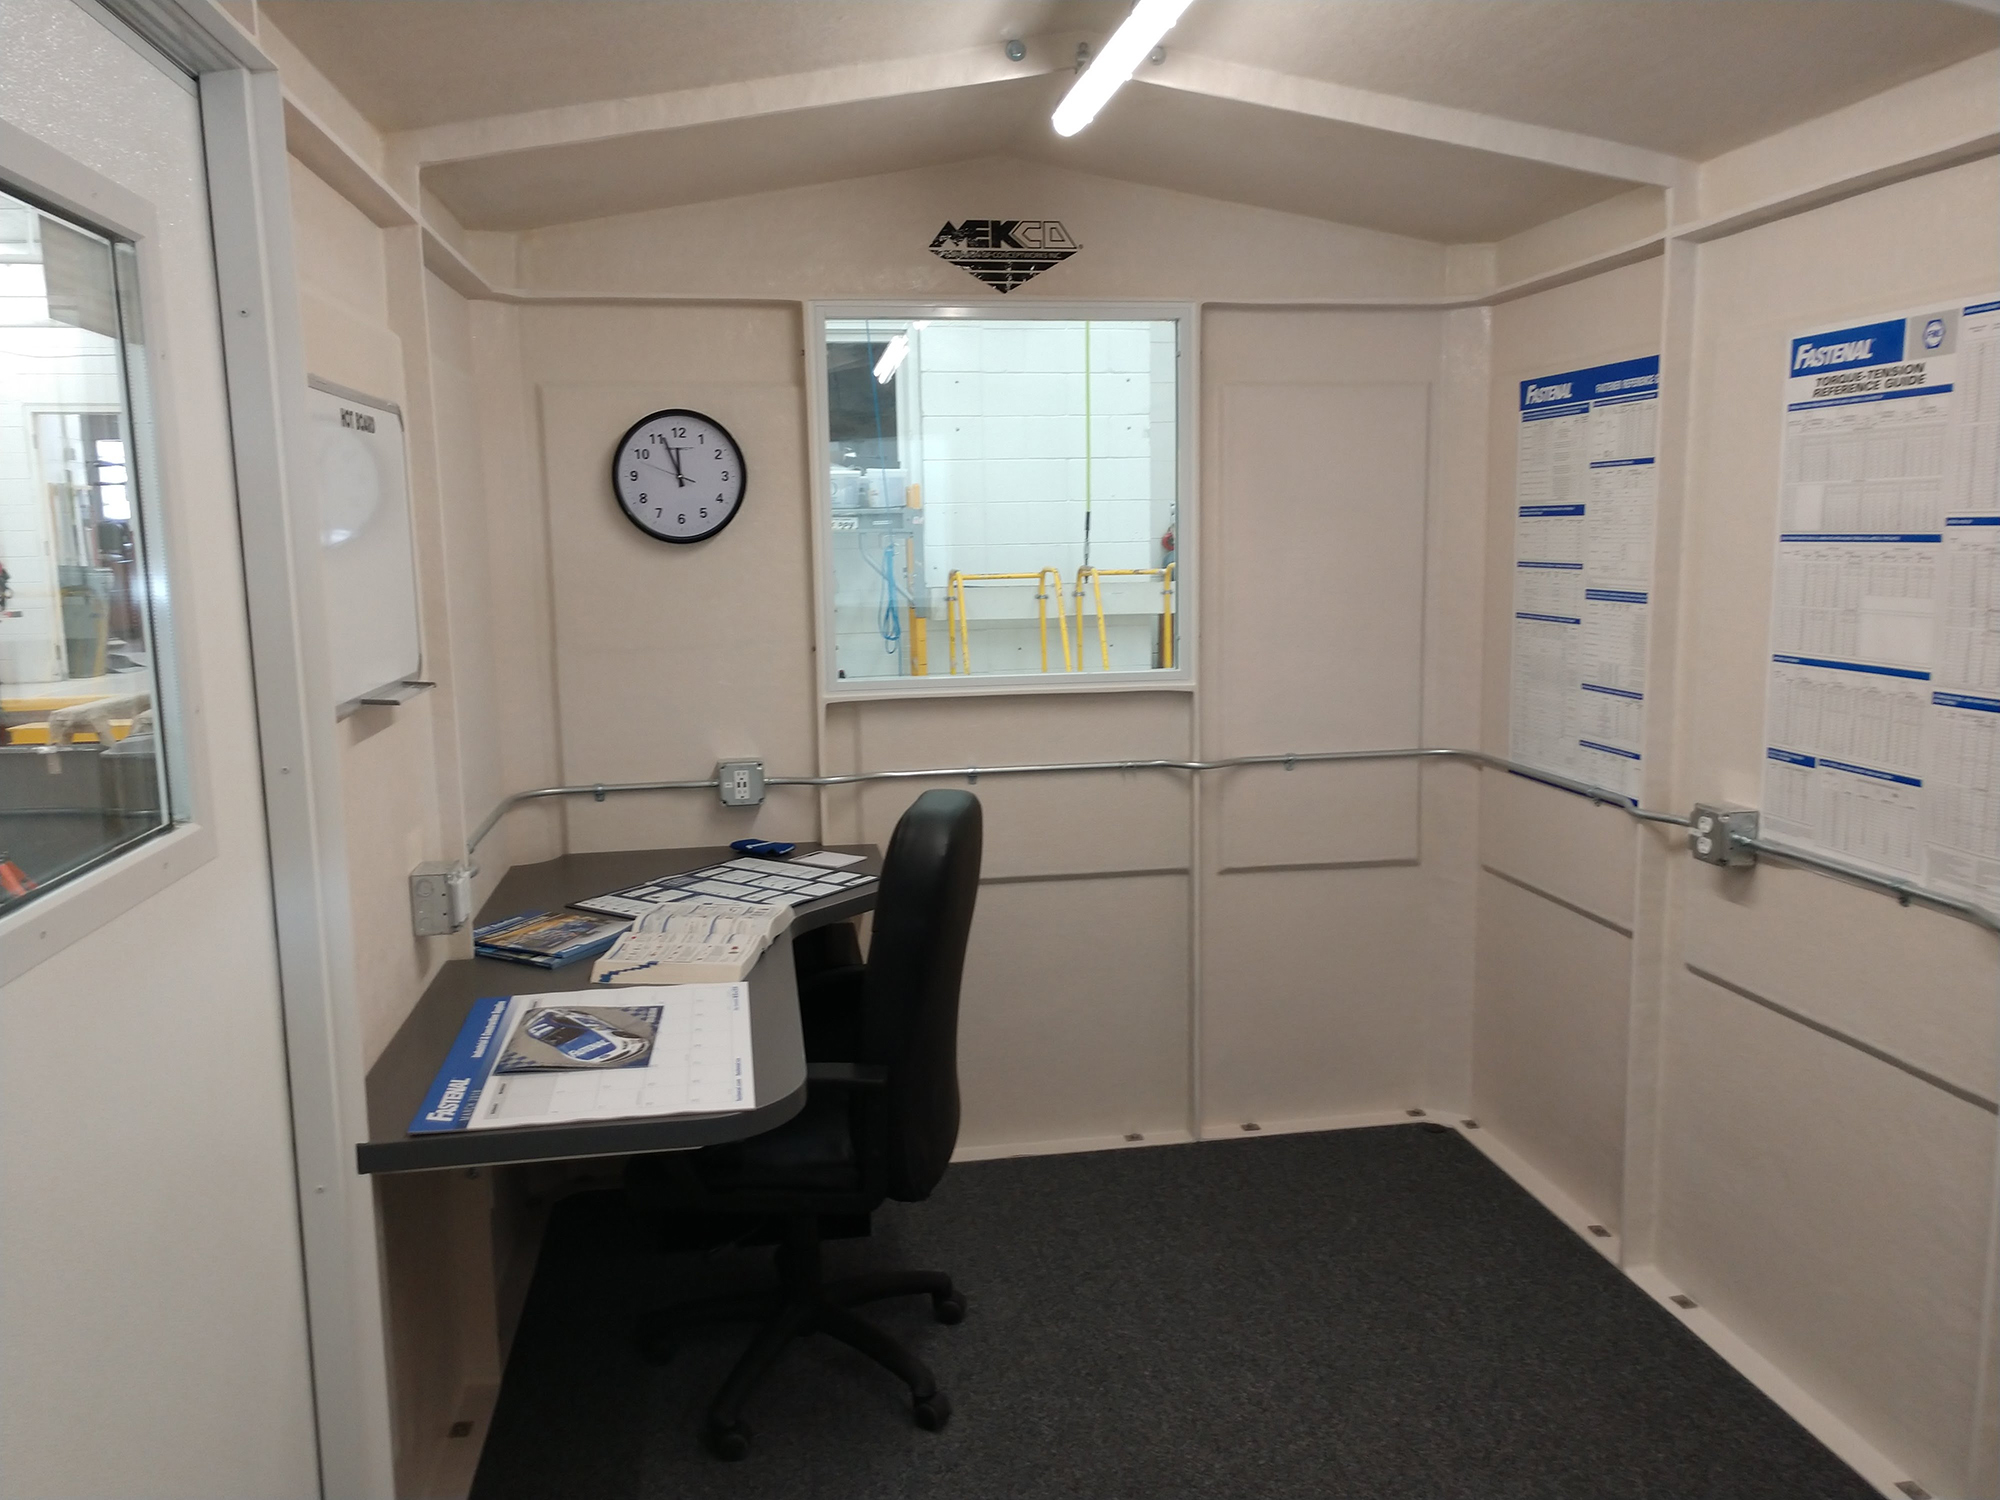 Mekco Onsite System - Interior Desk Space